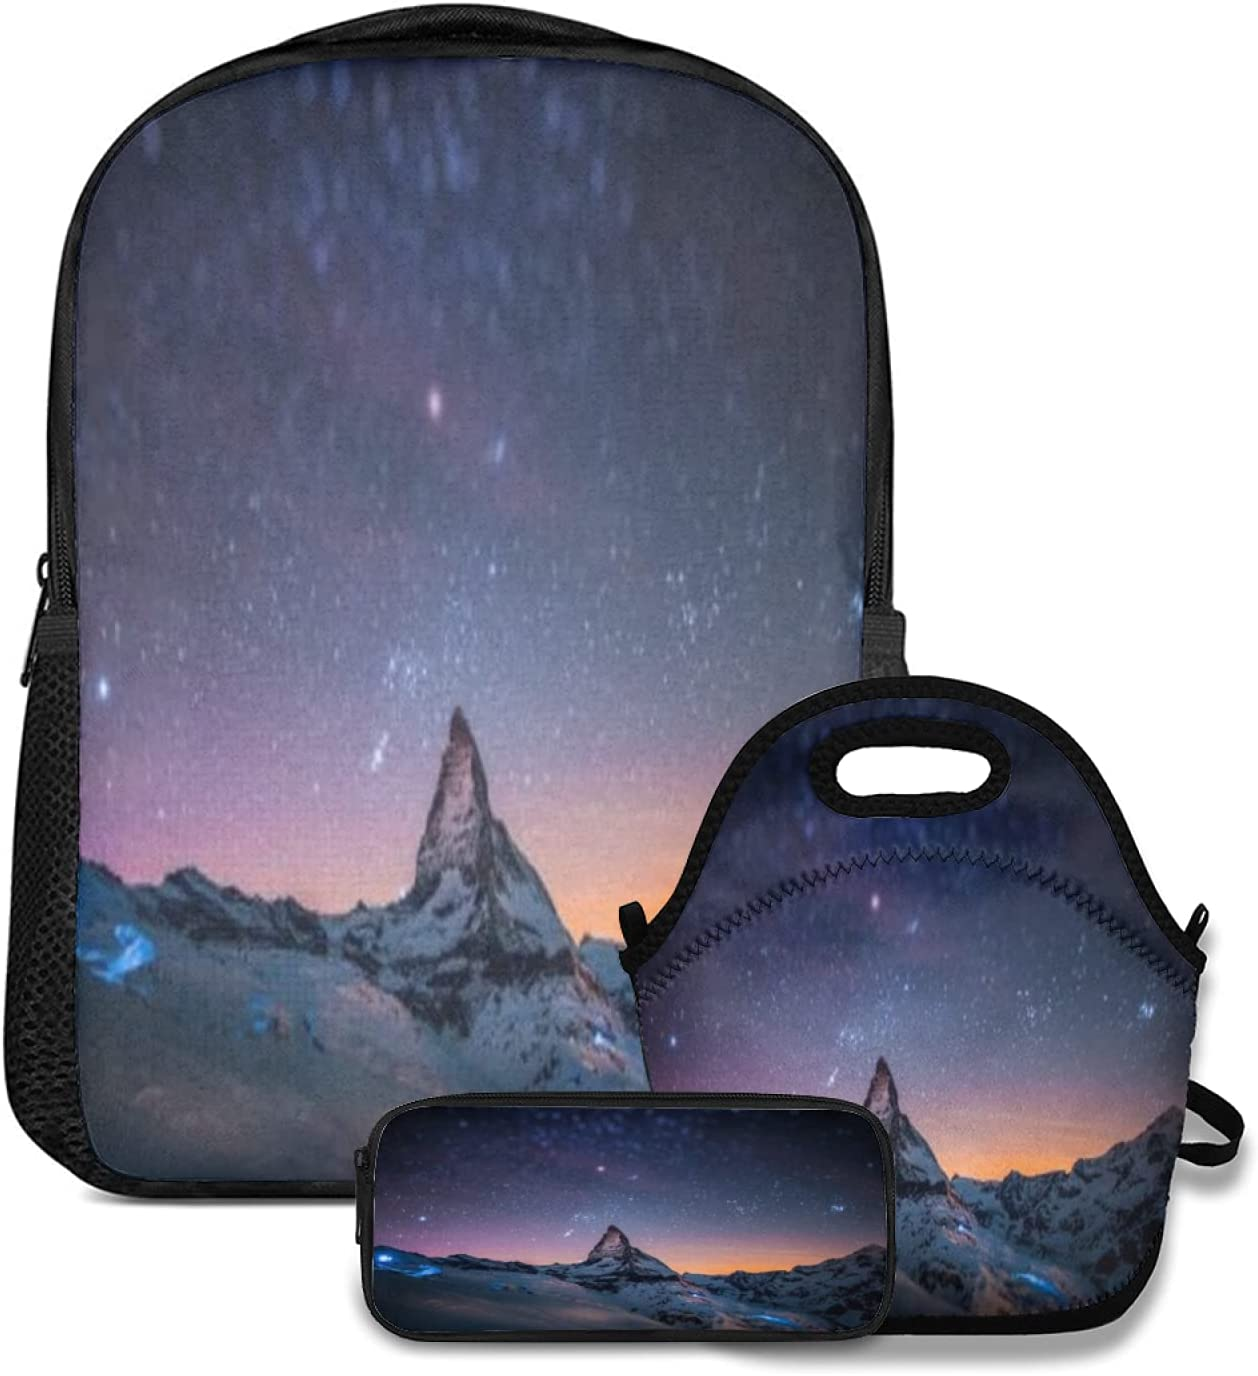 Backpack Lunch tote Bag and price Pencil Night Case Starry List price 3pc set Sky